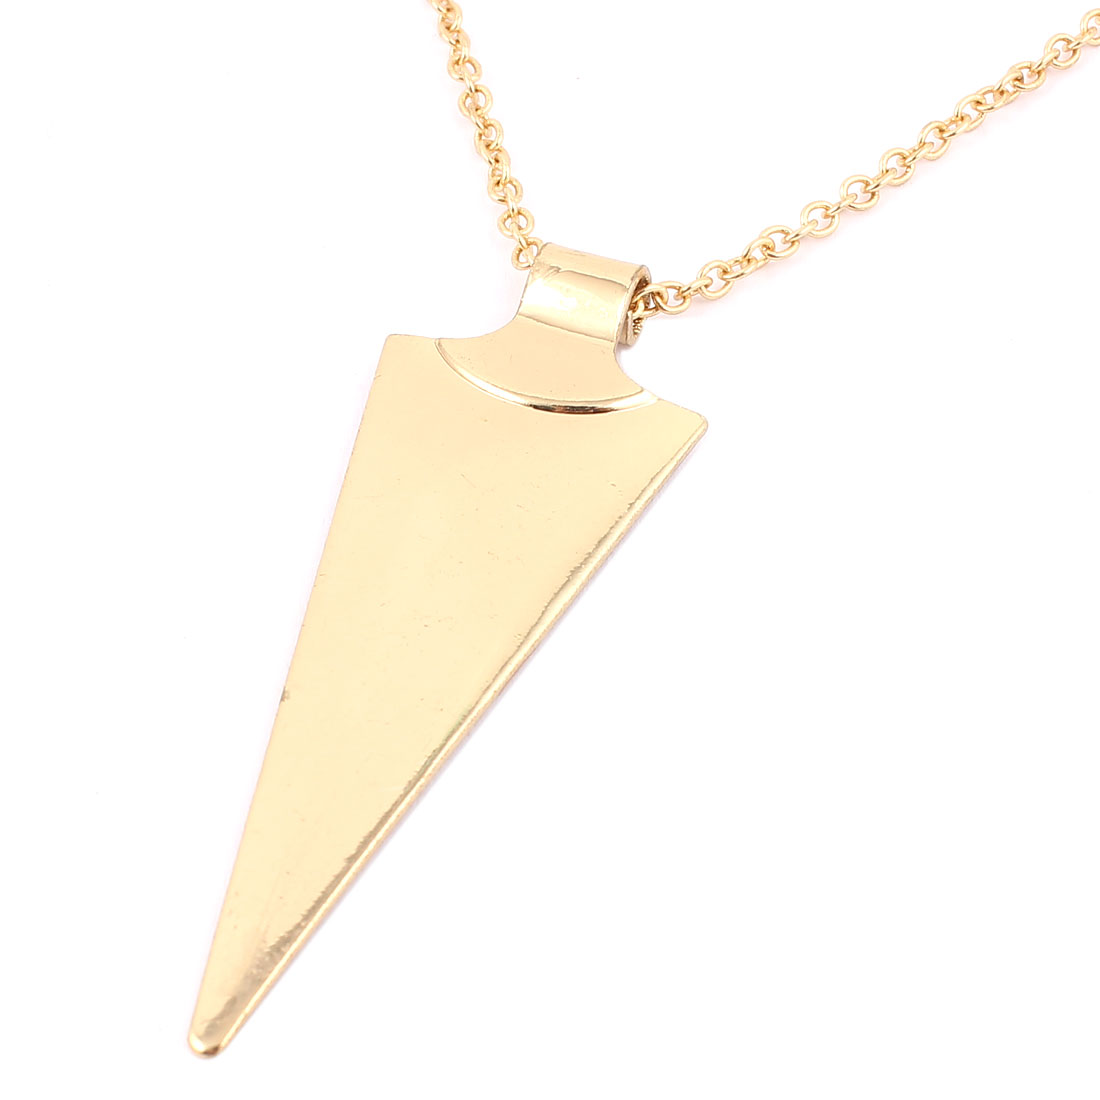 Ladies Women Metal Triangle Detail Pendant Lobster Buckle Strip Link Slim Chain Necklace Neckwear Collar Gold Tone